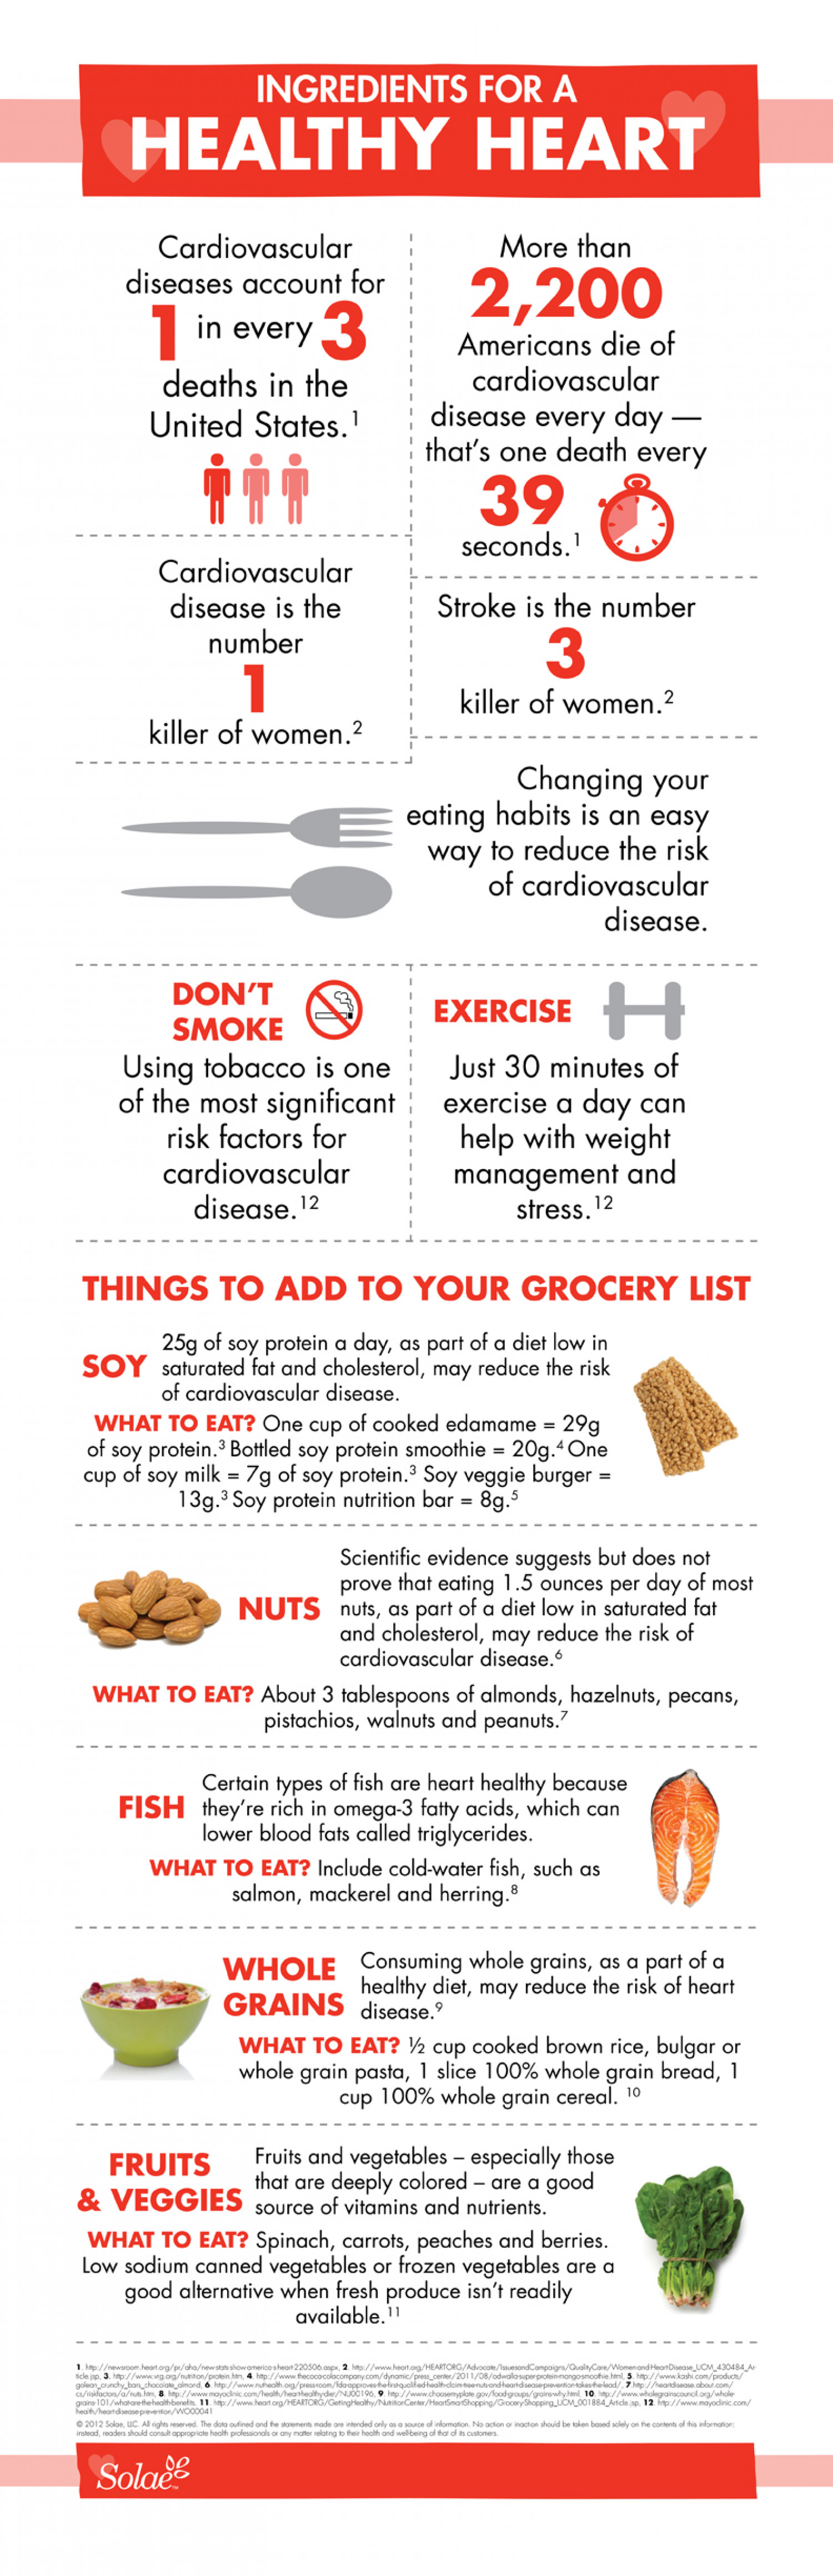 Ingredients for a Healthy Heart Infographic